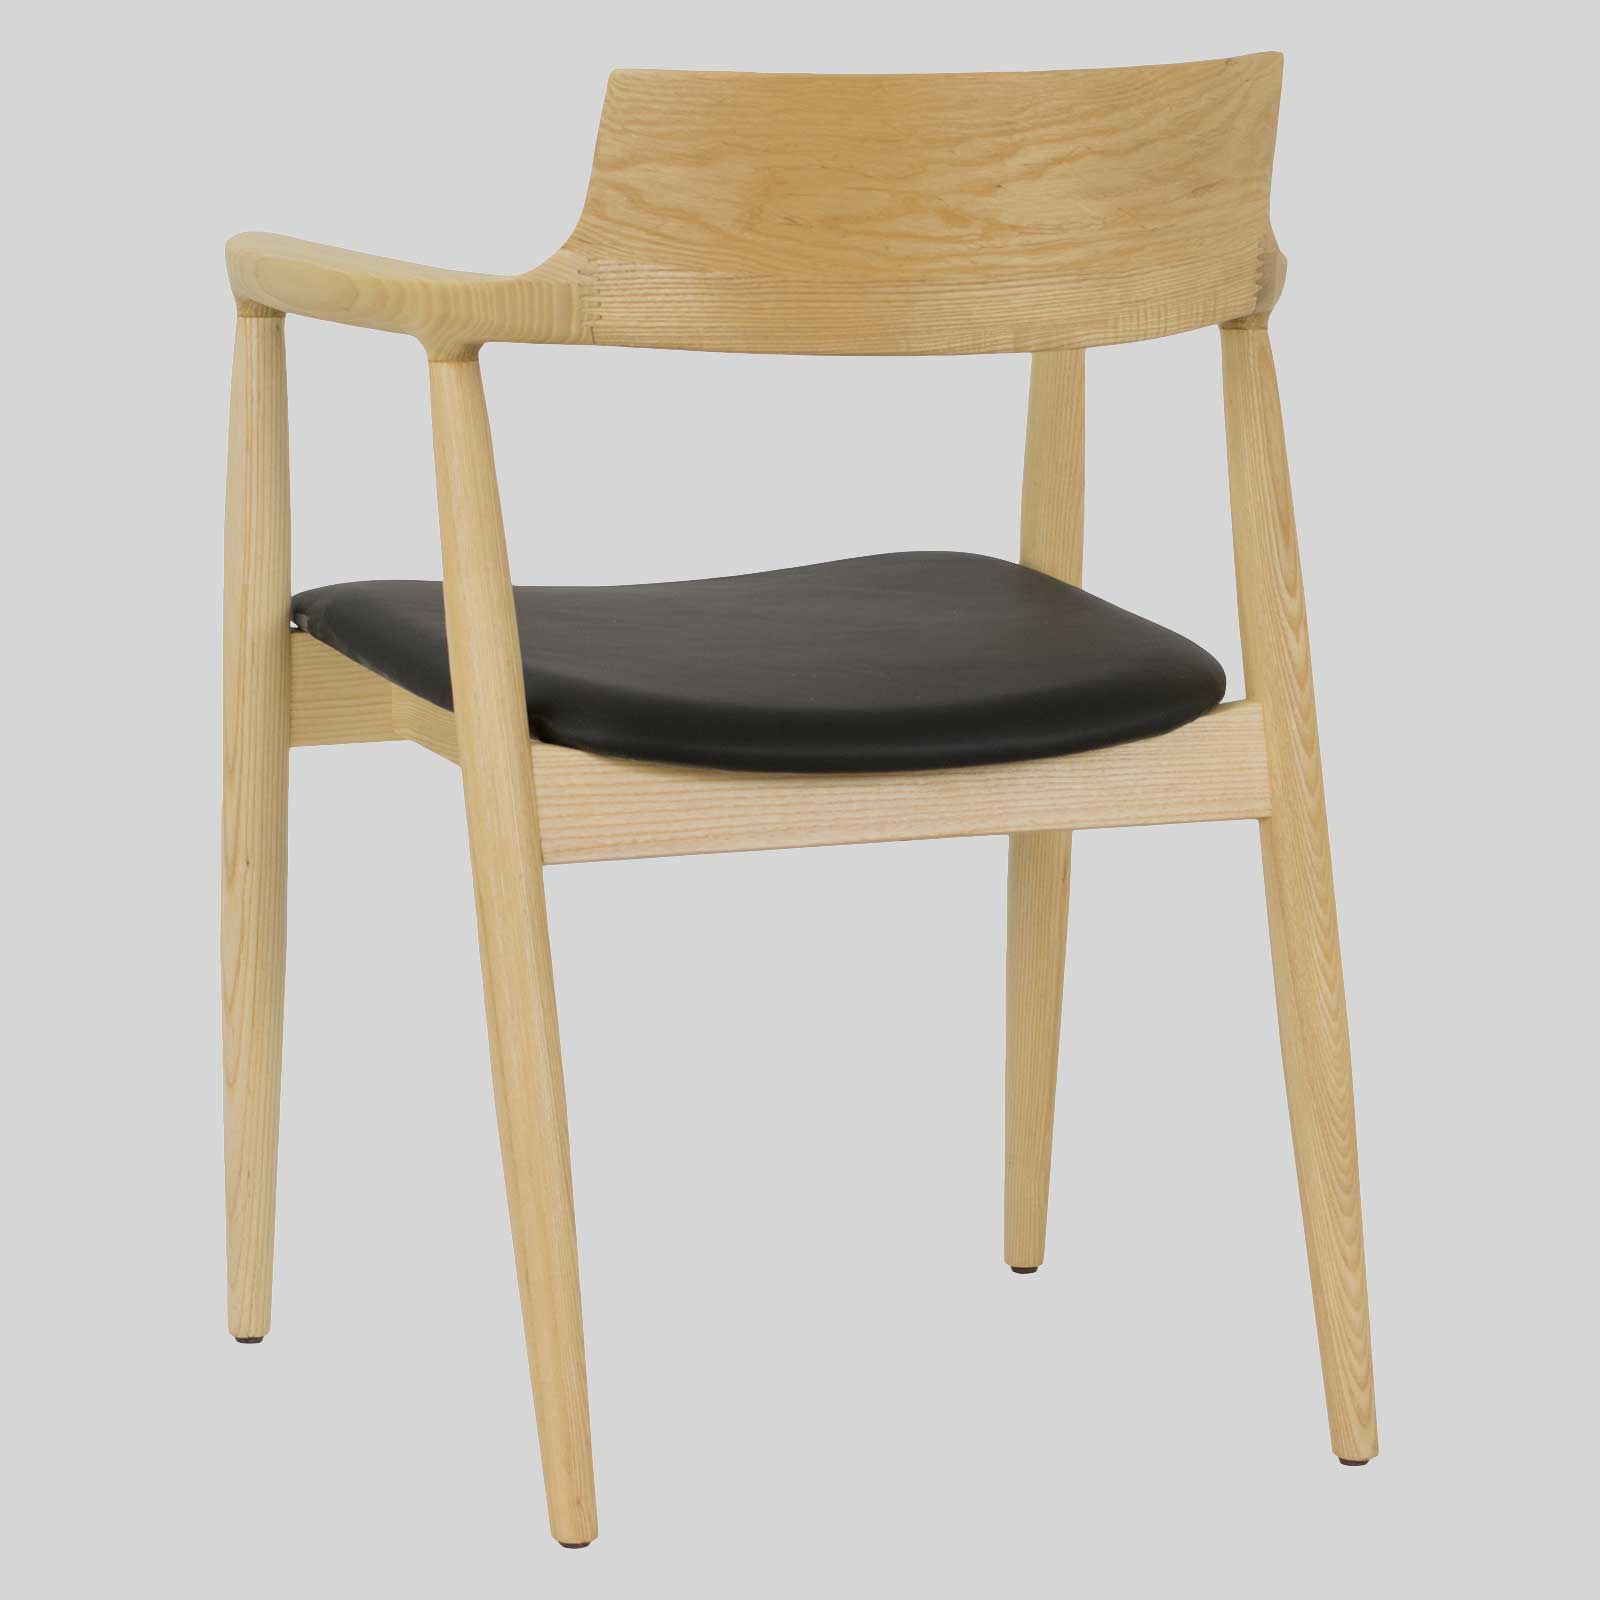 Scandinavian Design The Kingston Armchair By Concept